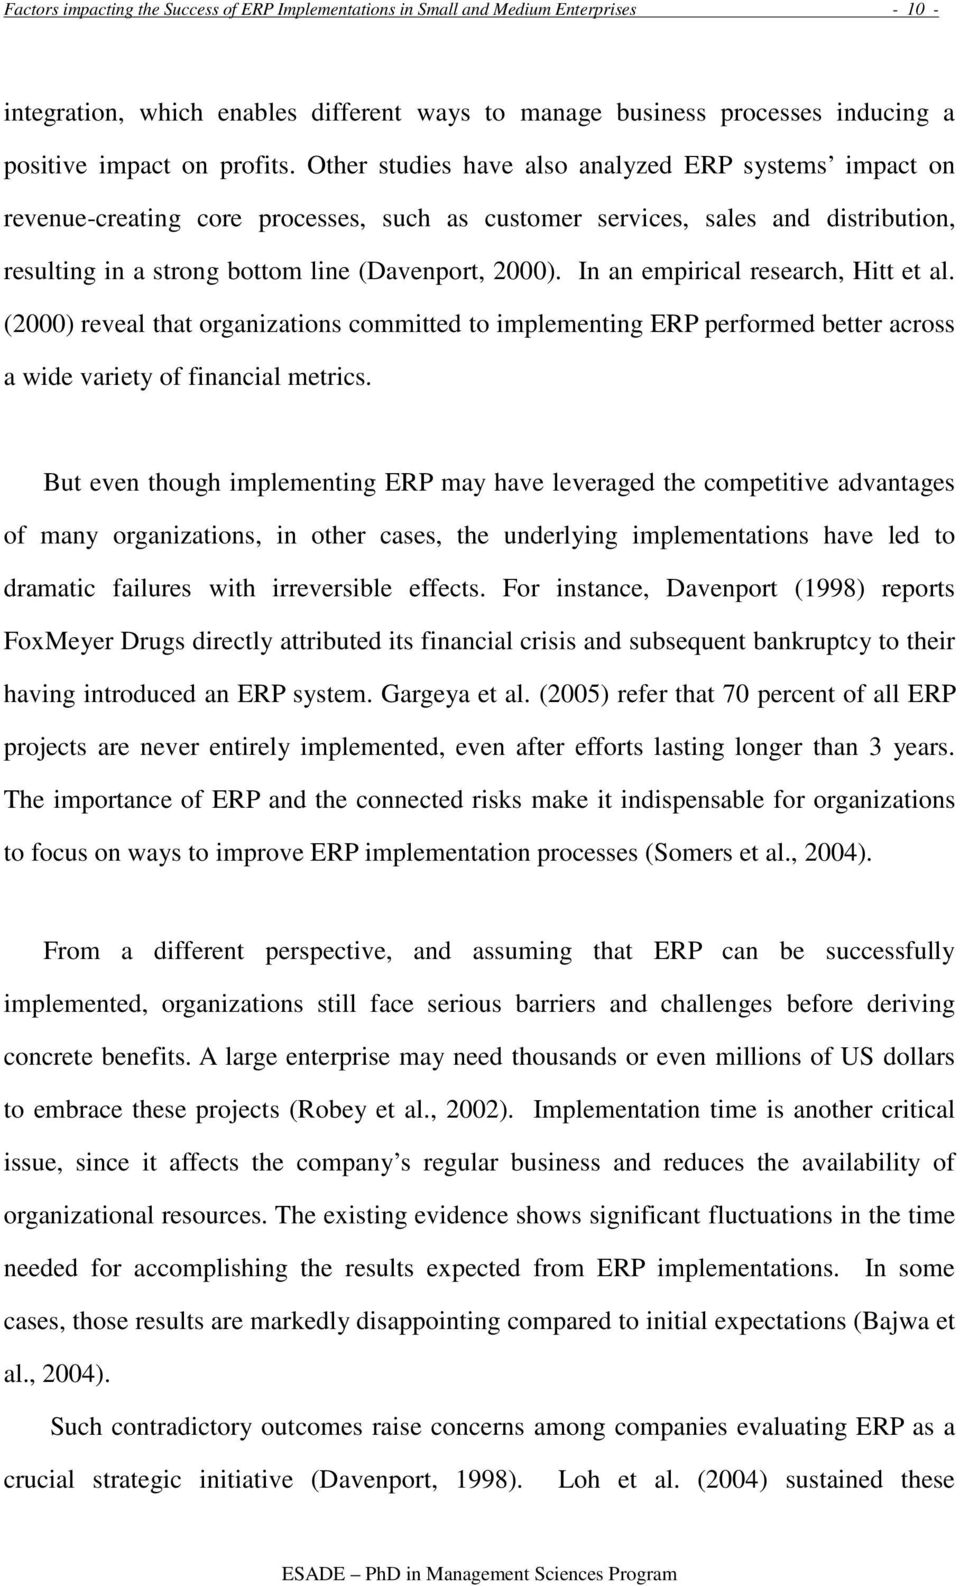 In an empirical research, Hitt et al. (2000) reveal that organizations committed to implementing ERP performed better across a wide variety of financial metrics.